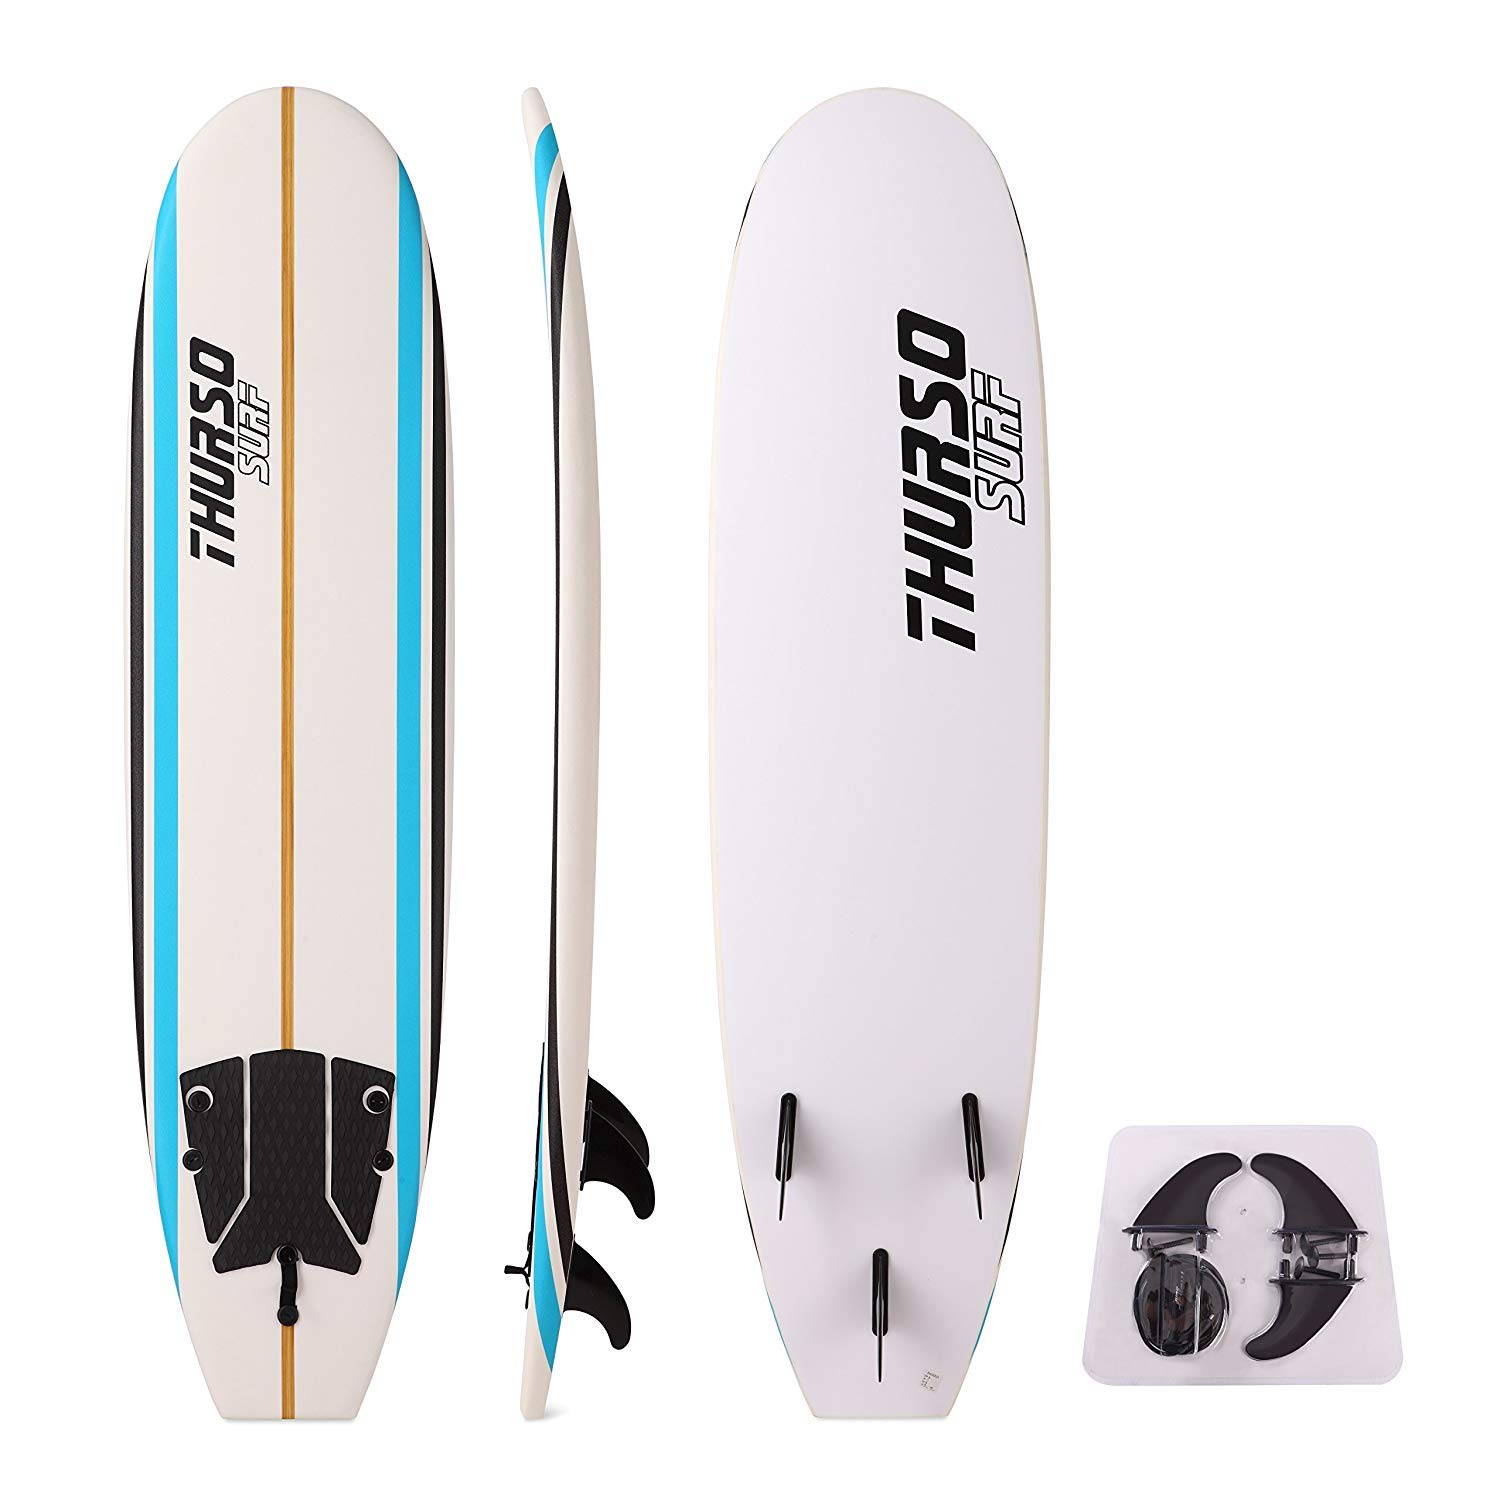 THURSO SURF Aero 7 ft Soft Top Surfboard Foam Surfboard Package Includes Three Fins Double Stainless Steel Swivel Leash EPS Core IXPE Deck HDPE Slick Bottom Built in Non Slip Deck Grip by THURSO SURF